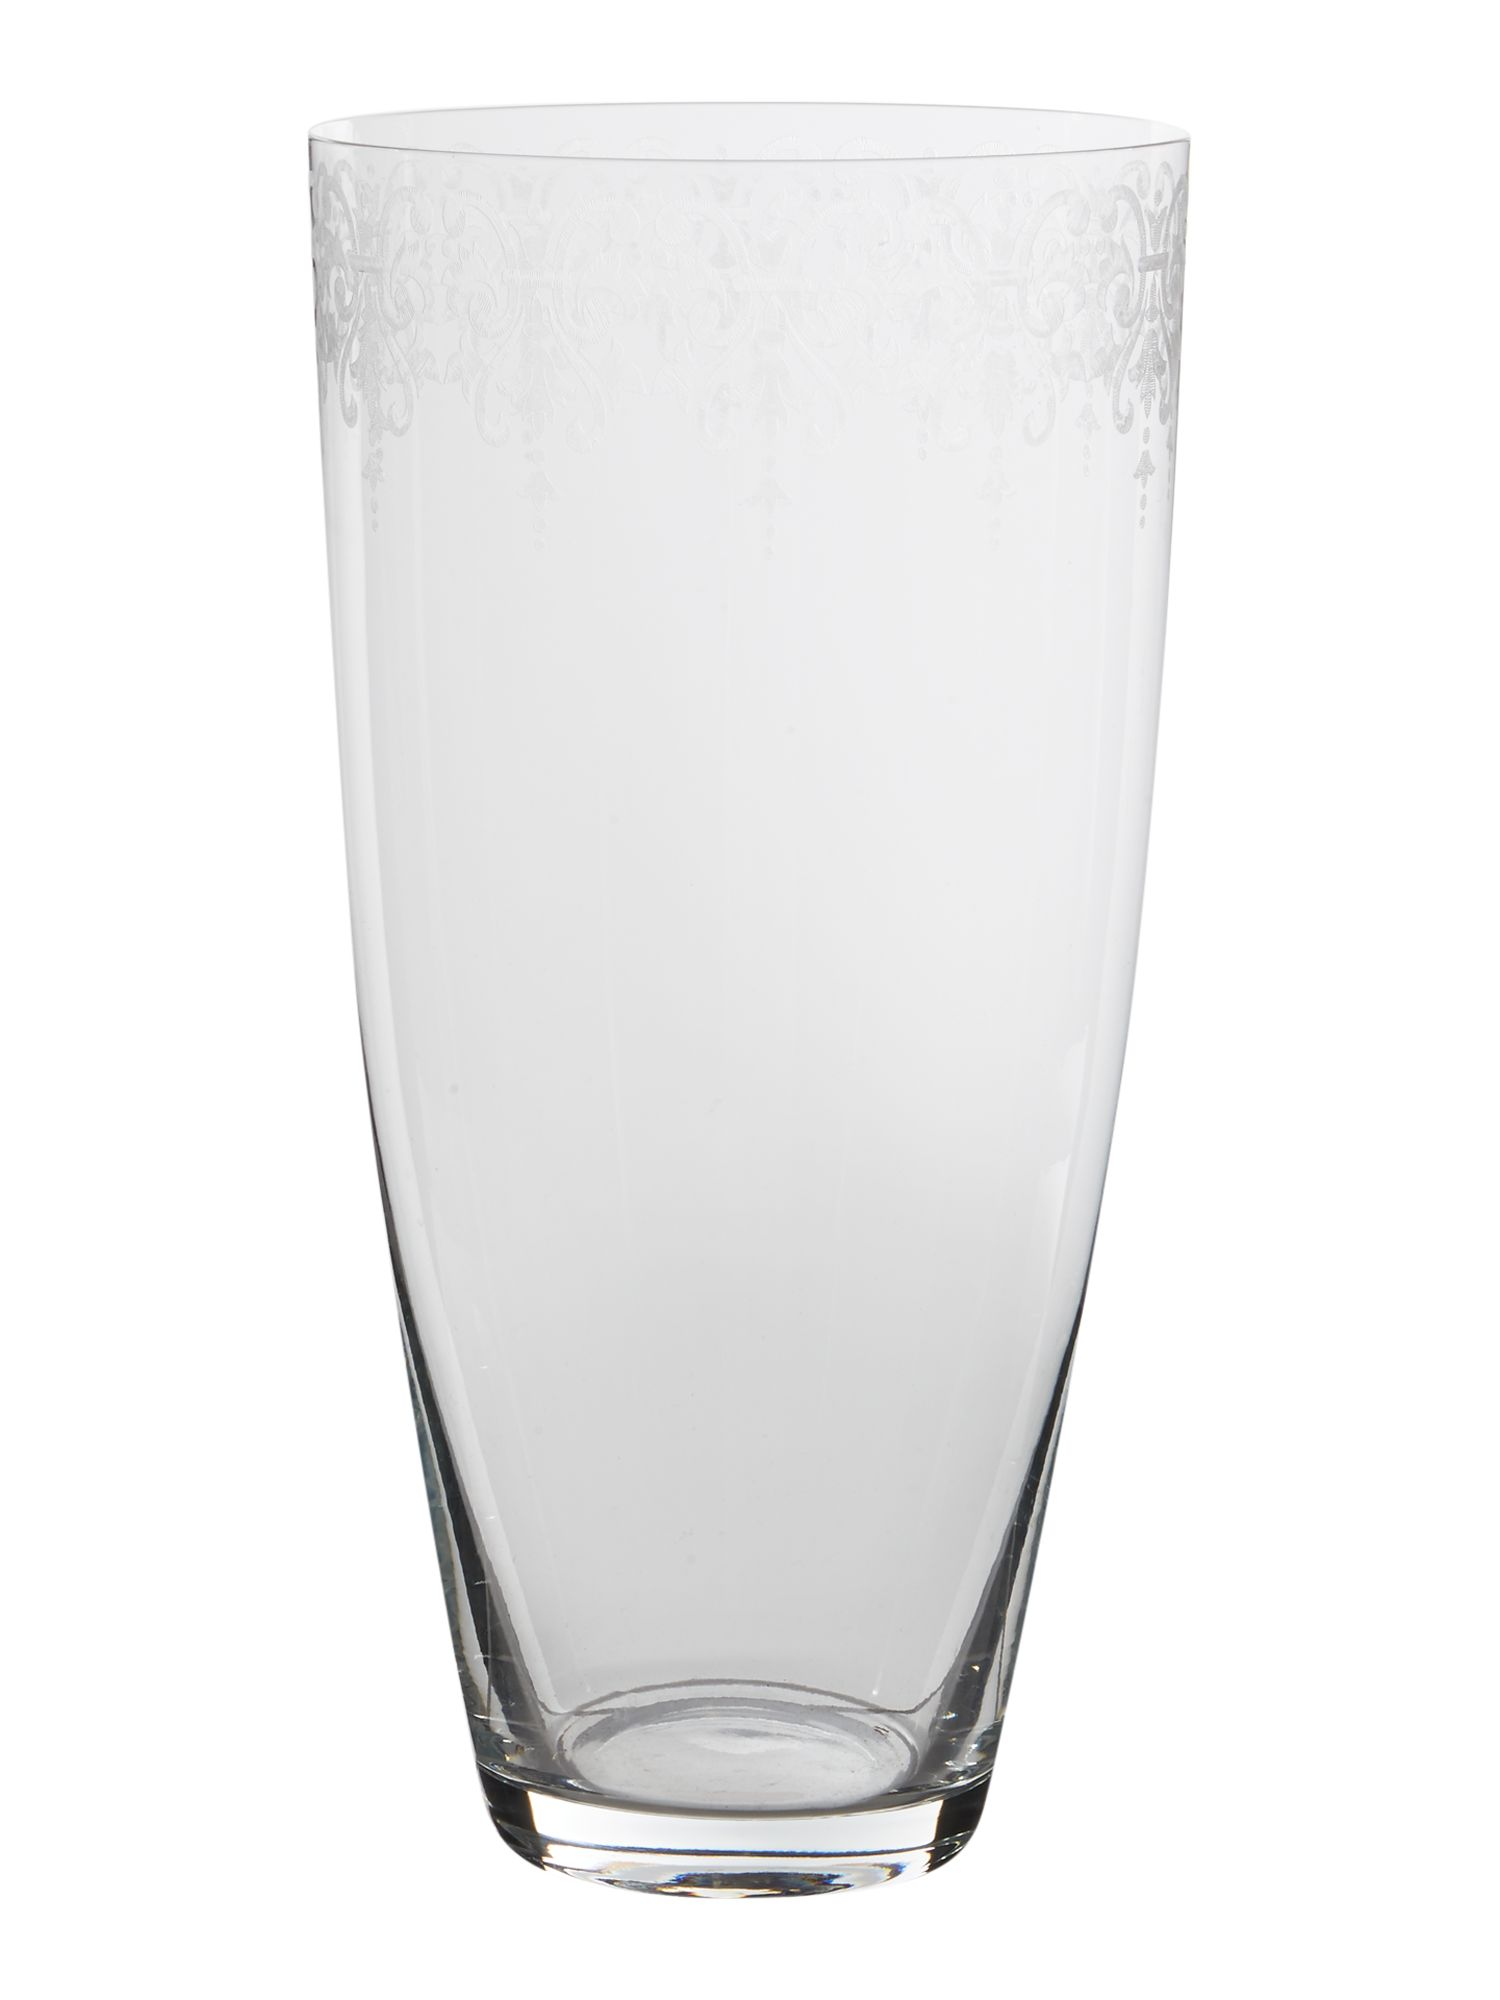 Image of Junipa Bea glass etched cylindrical vase